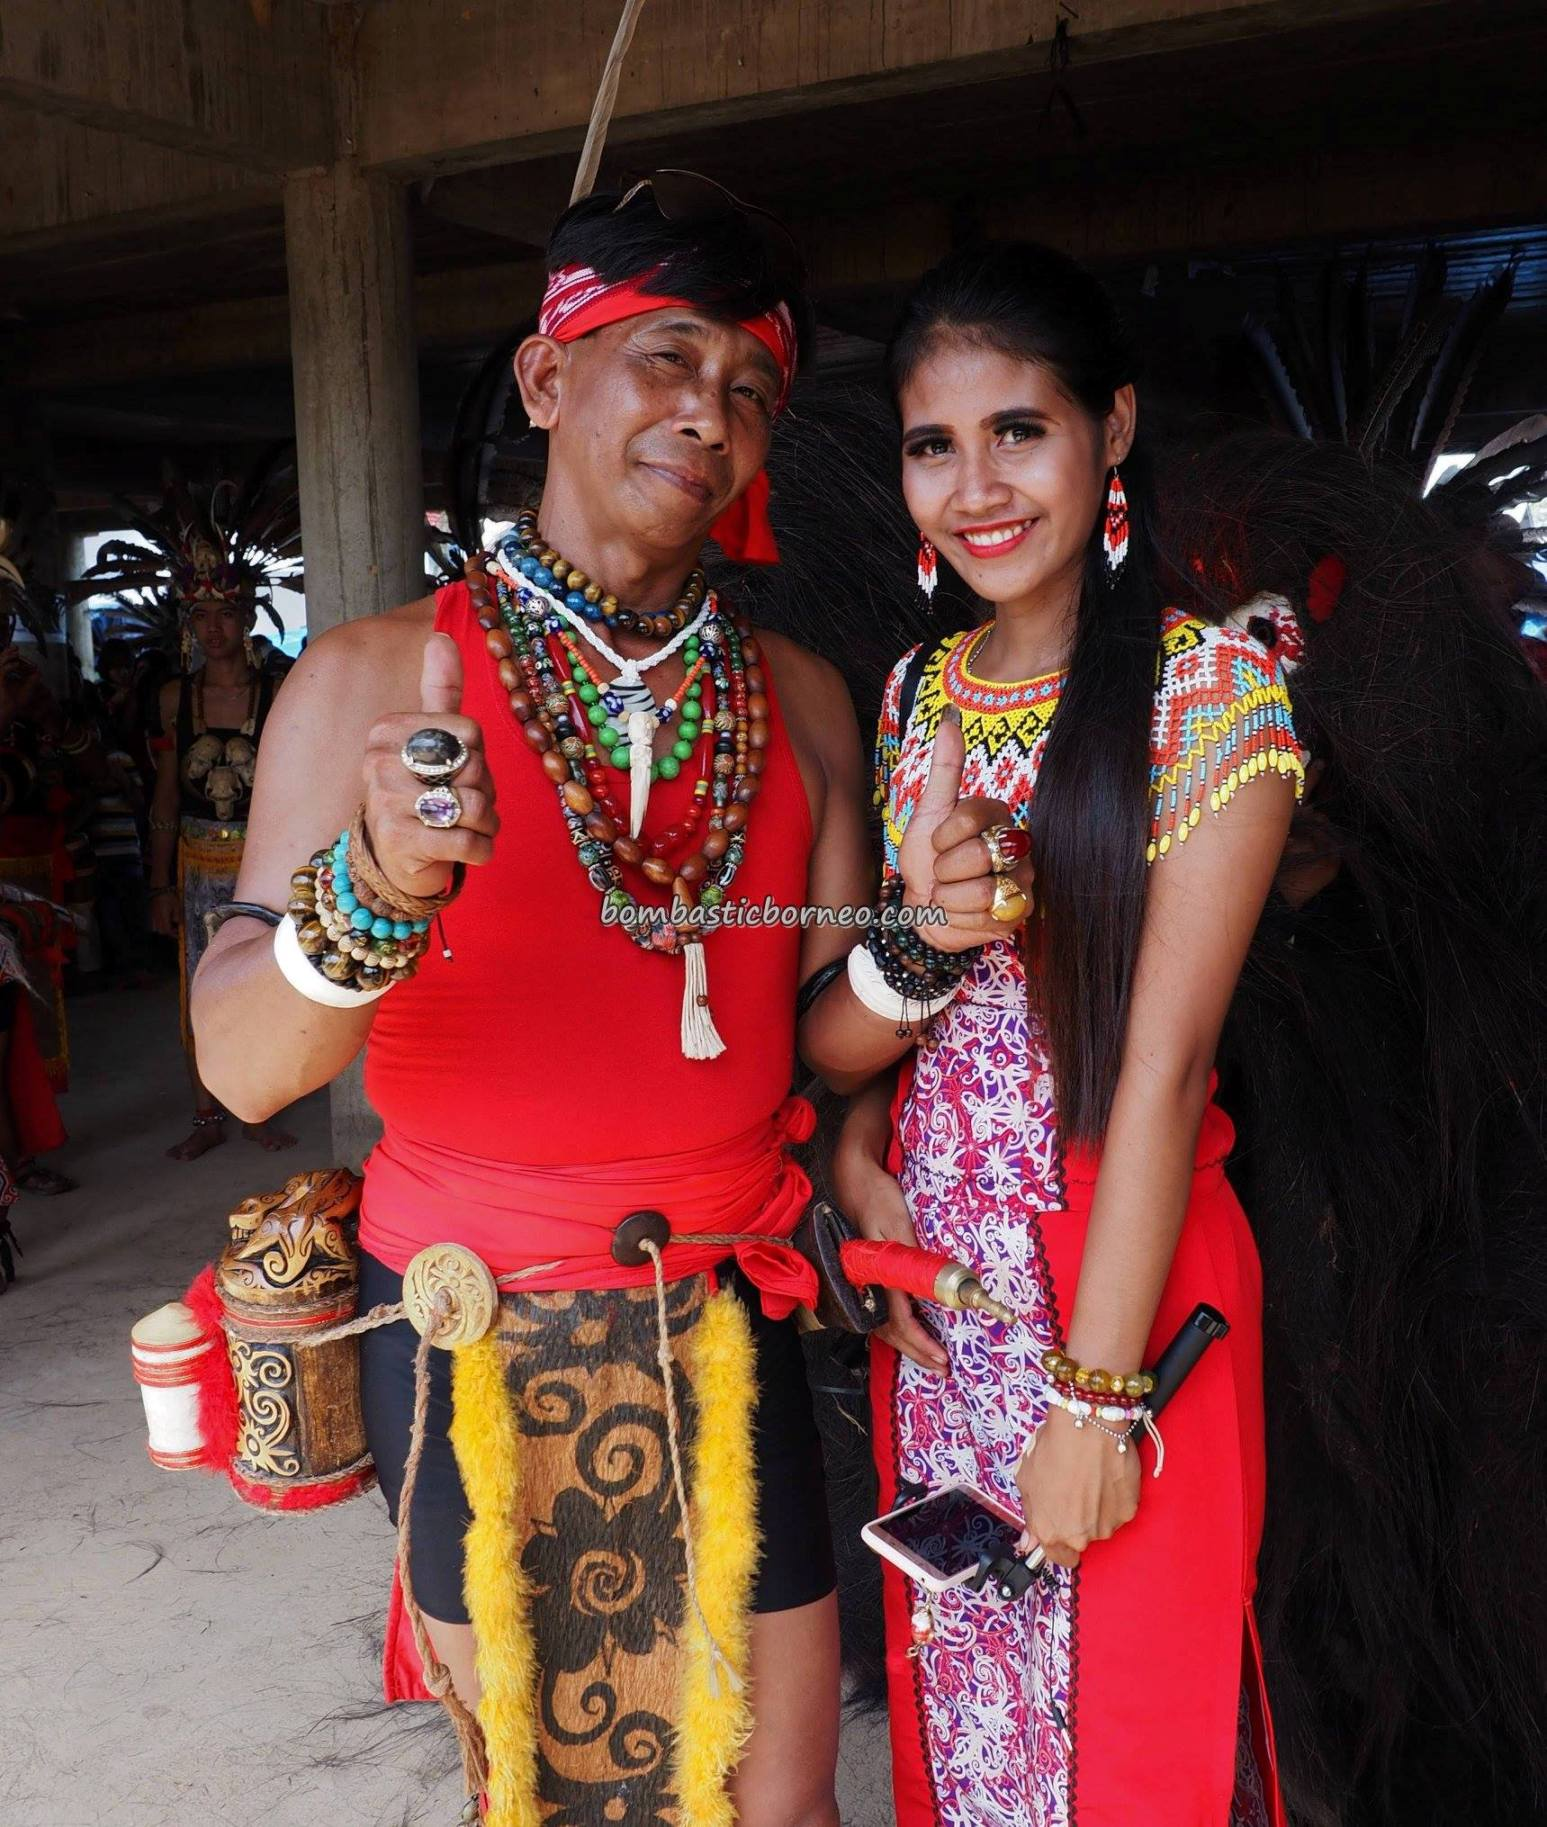 harvest festival, indigenous, dayak, backpackers, destination, culture, event, ethnic, tribal, Tourism, tourist attraction, travel guide, trans borneo, 婆罗洲印尼西加里曼丹, 原住民部落旅游